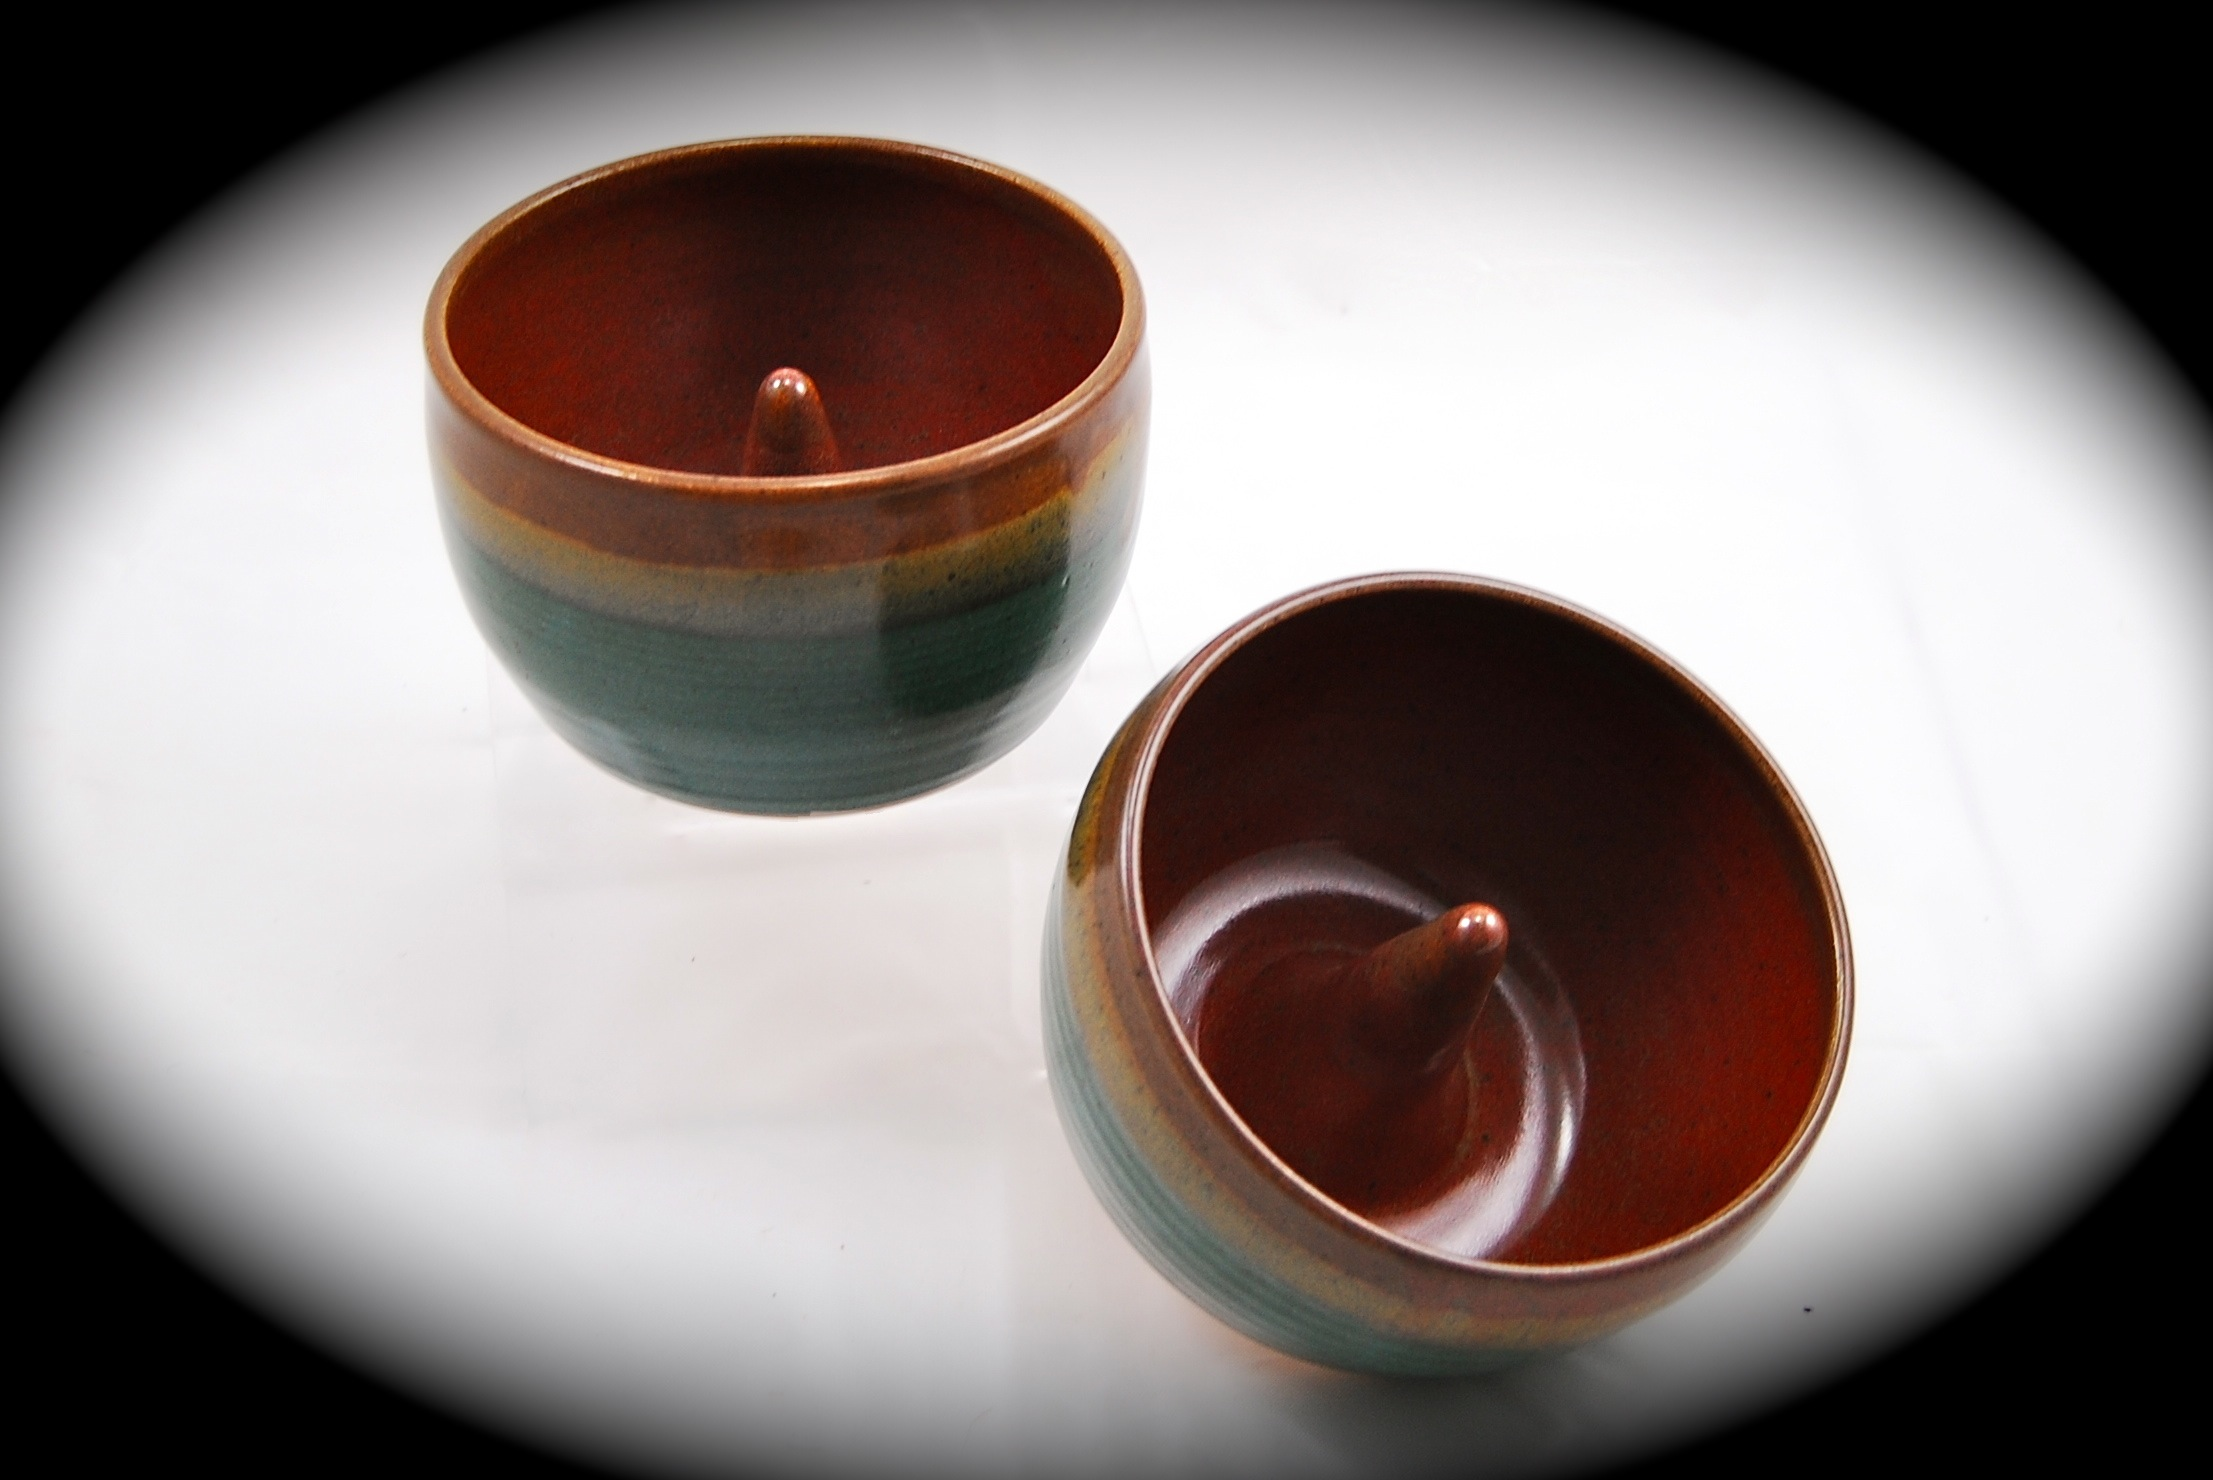 handmade pottery pieces